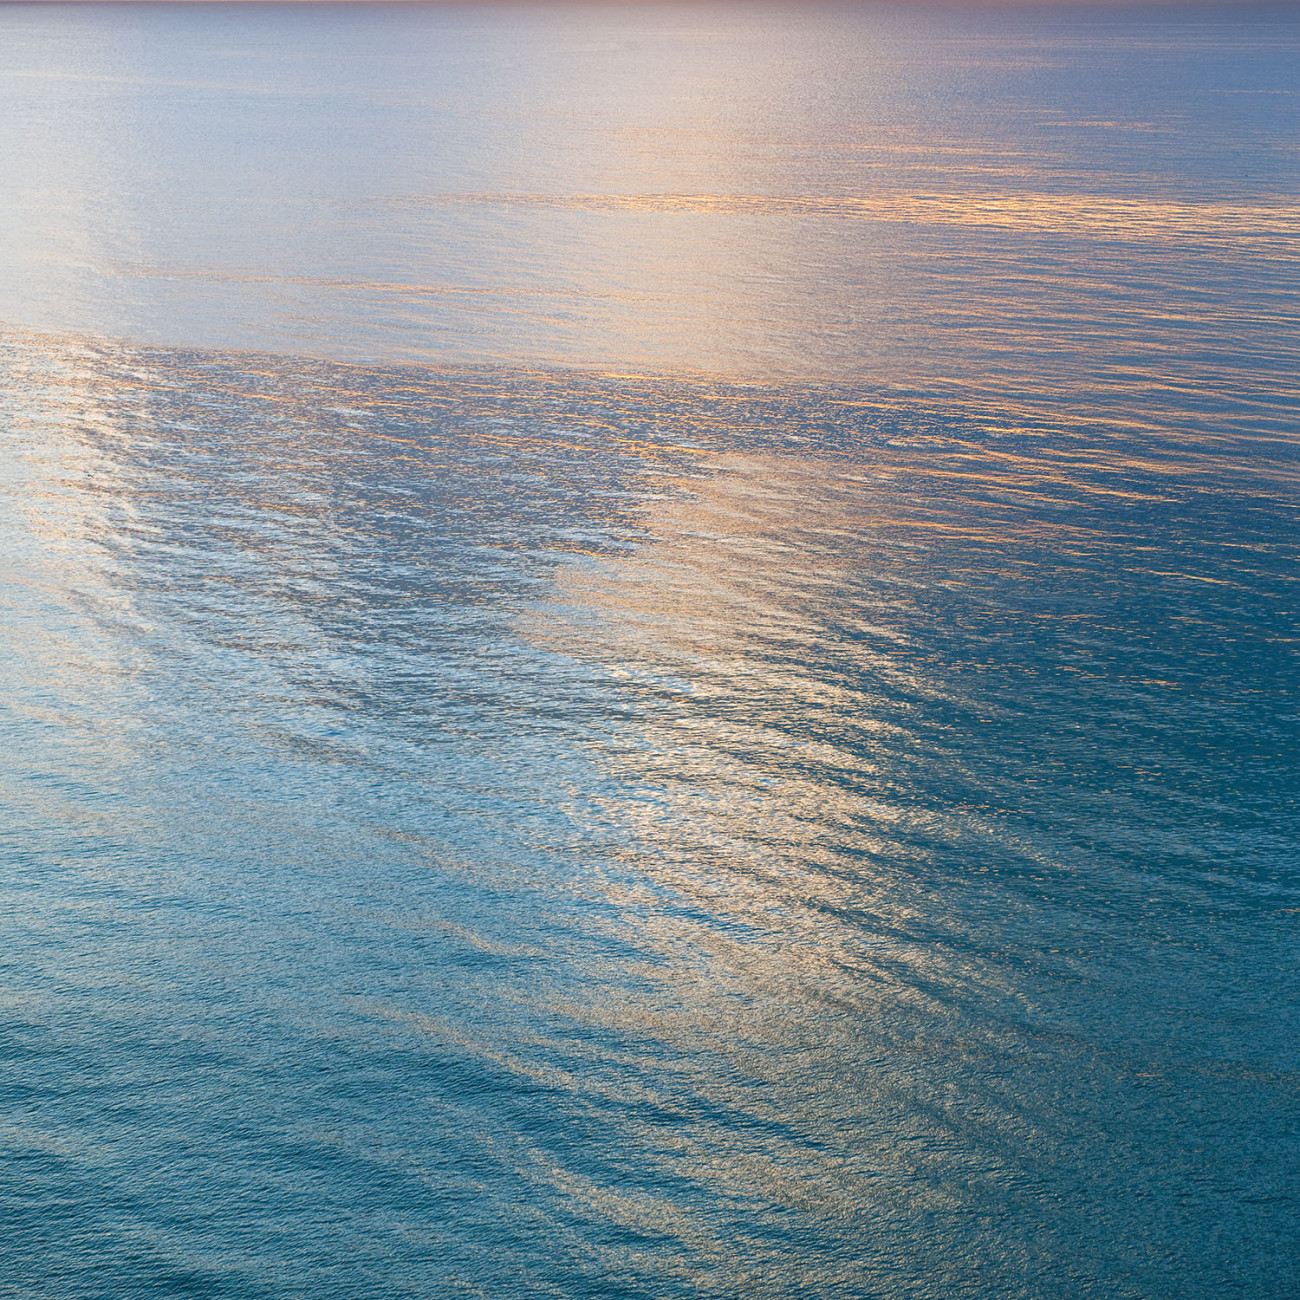 Morning reflections in calm seas, Miami, 2009